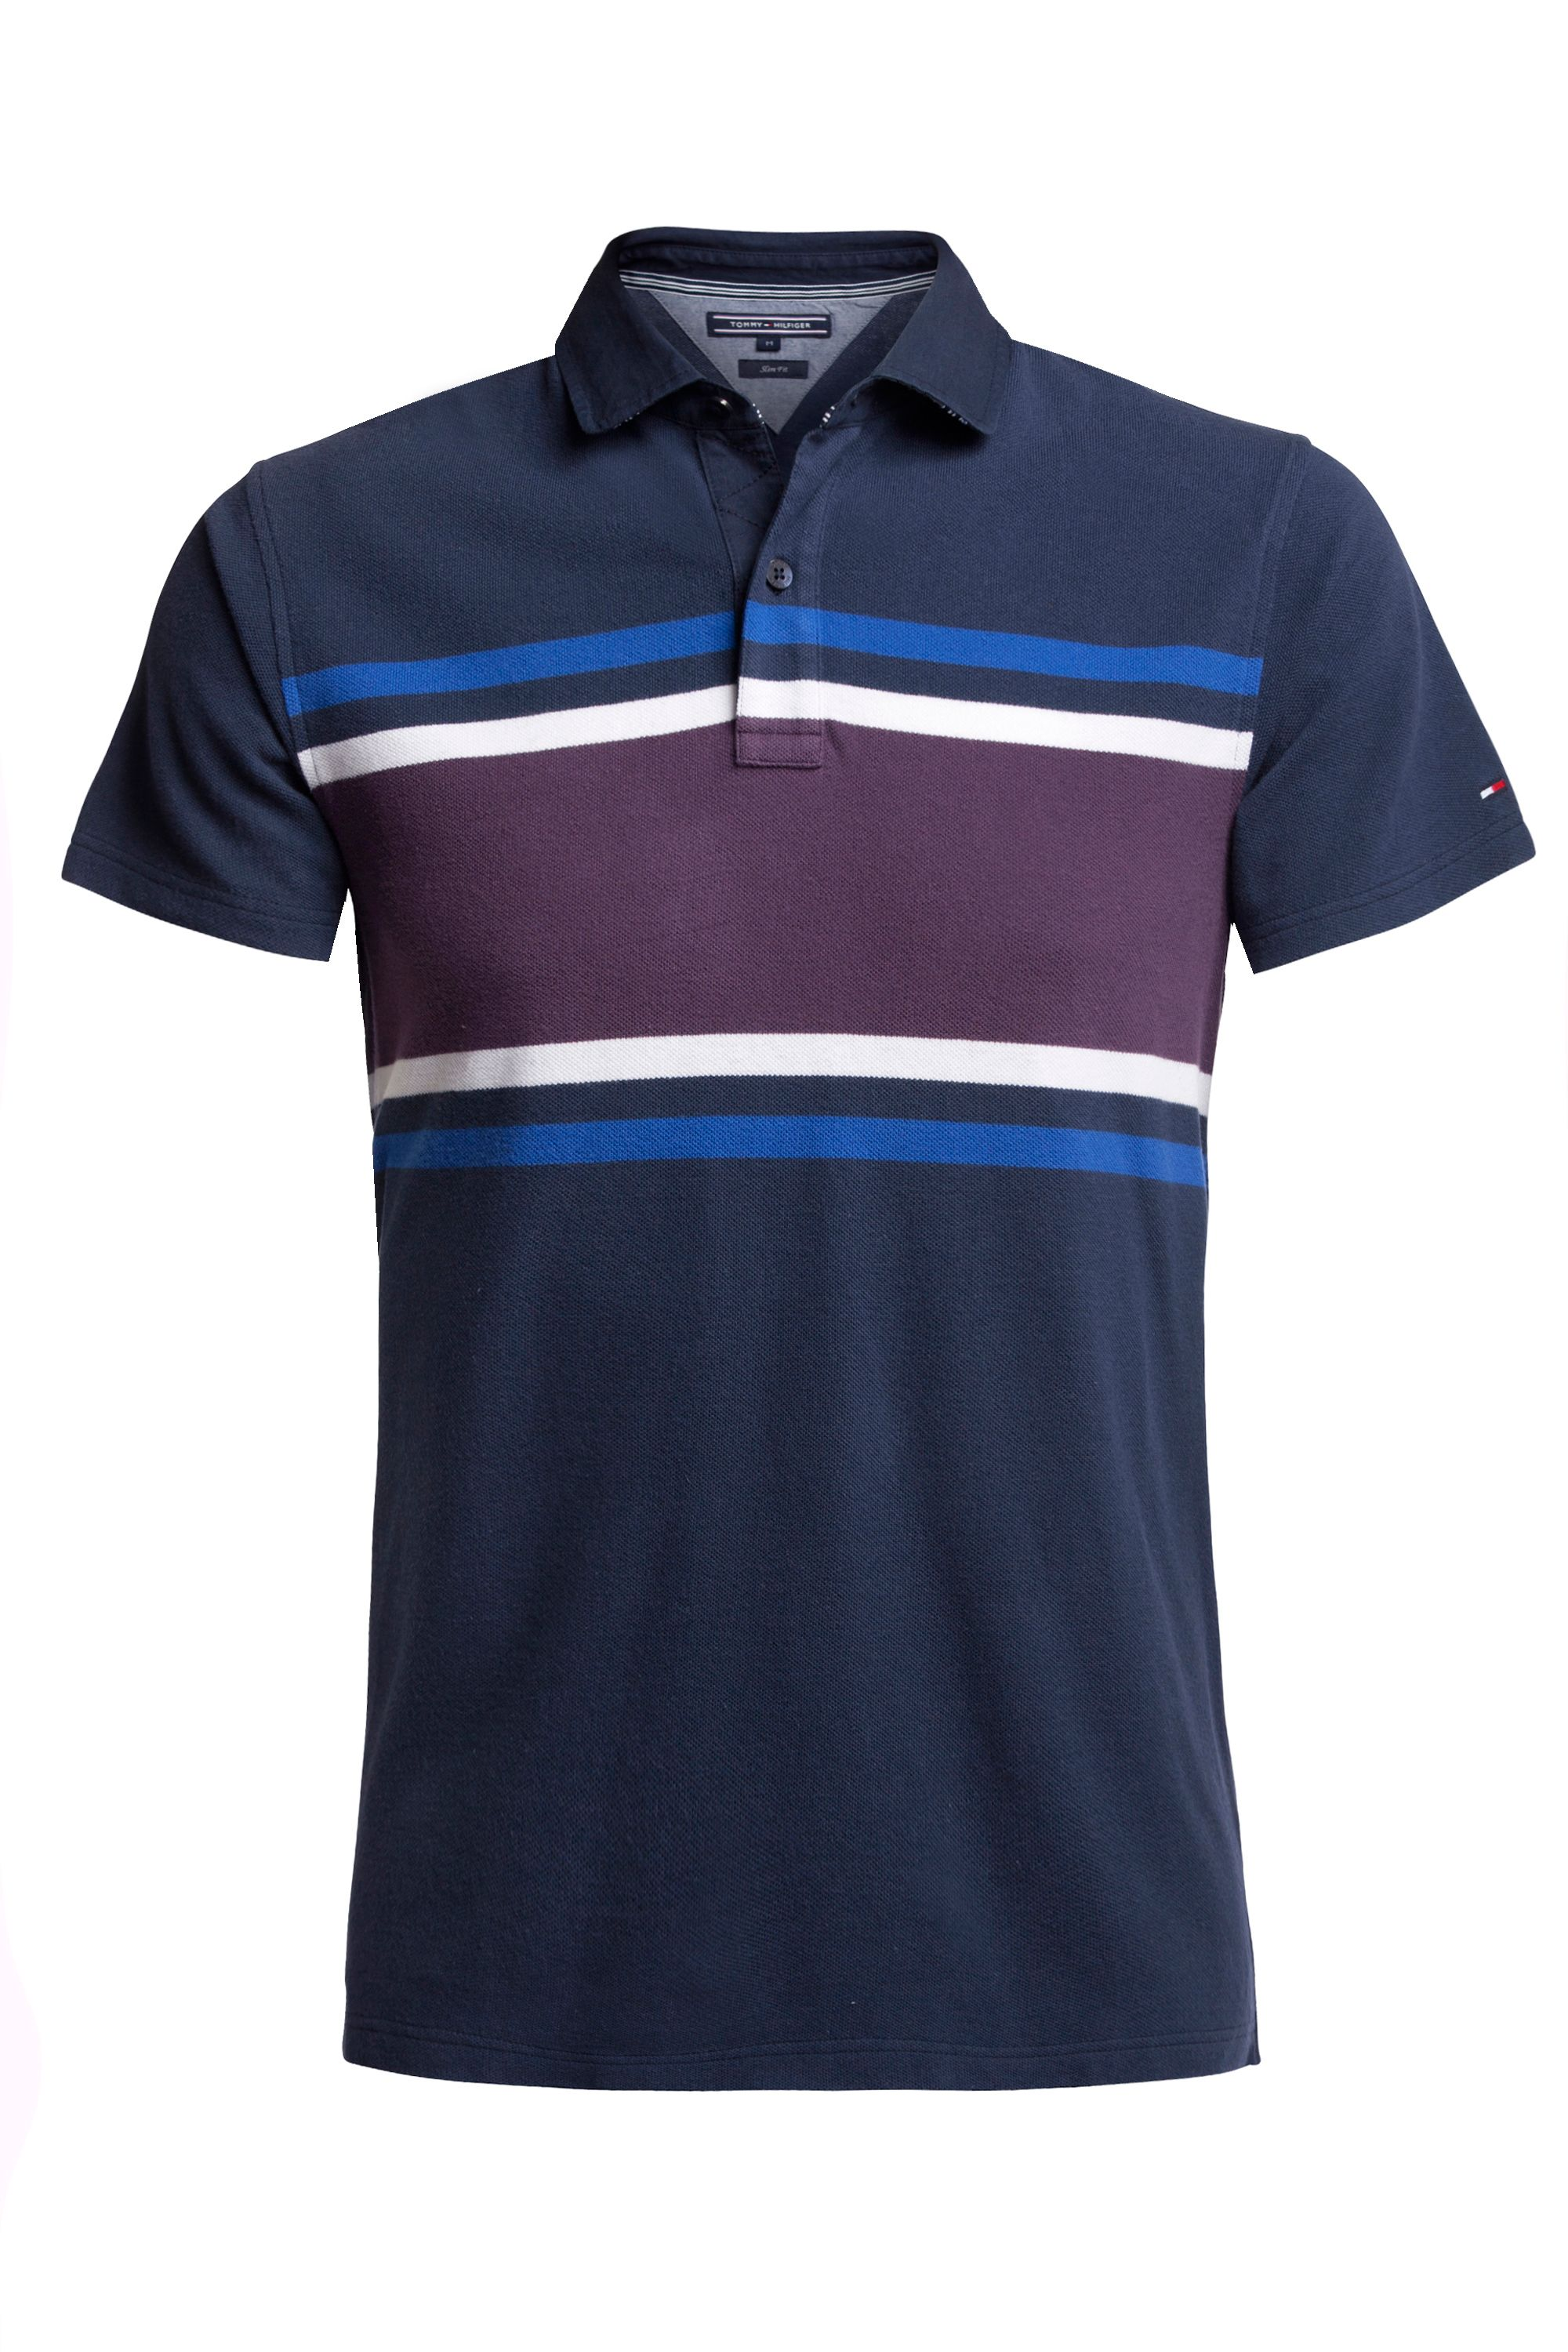 Men's Tommy Hilfiger Berend Eng Stripe Polo Top, Blue